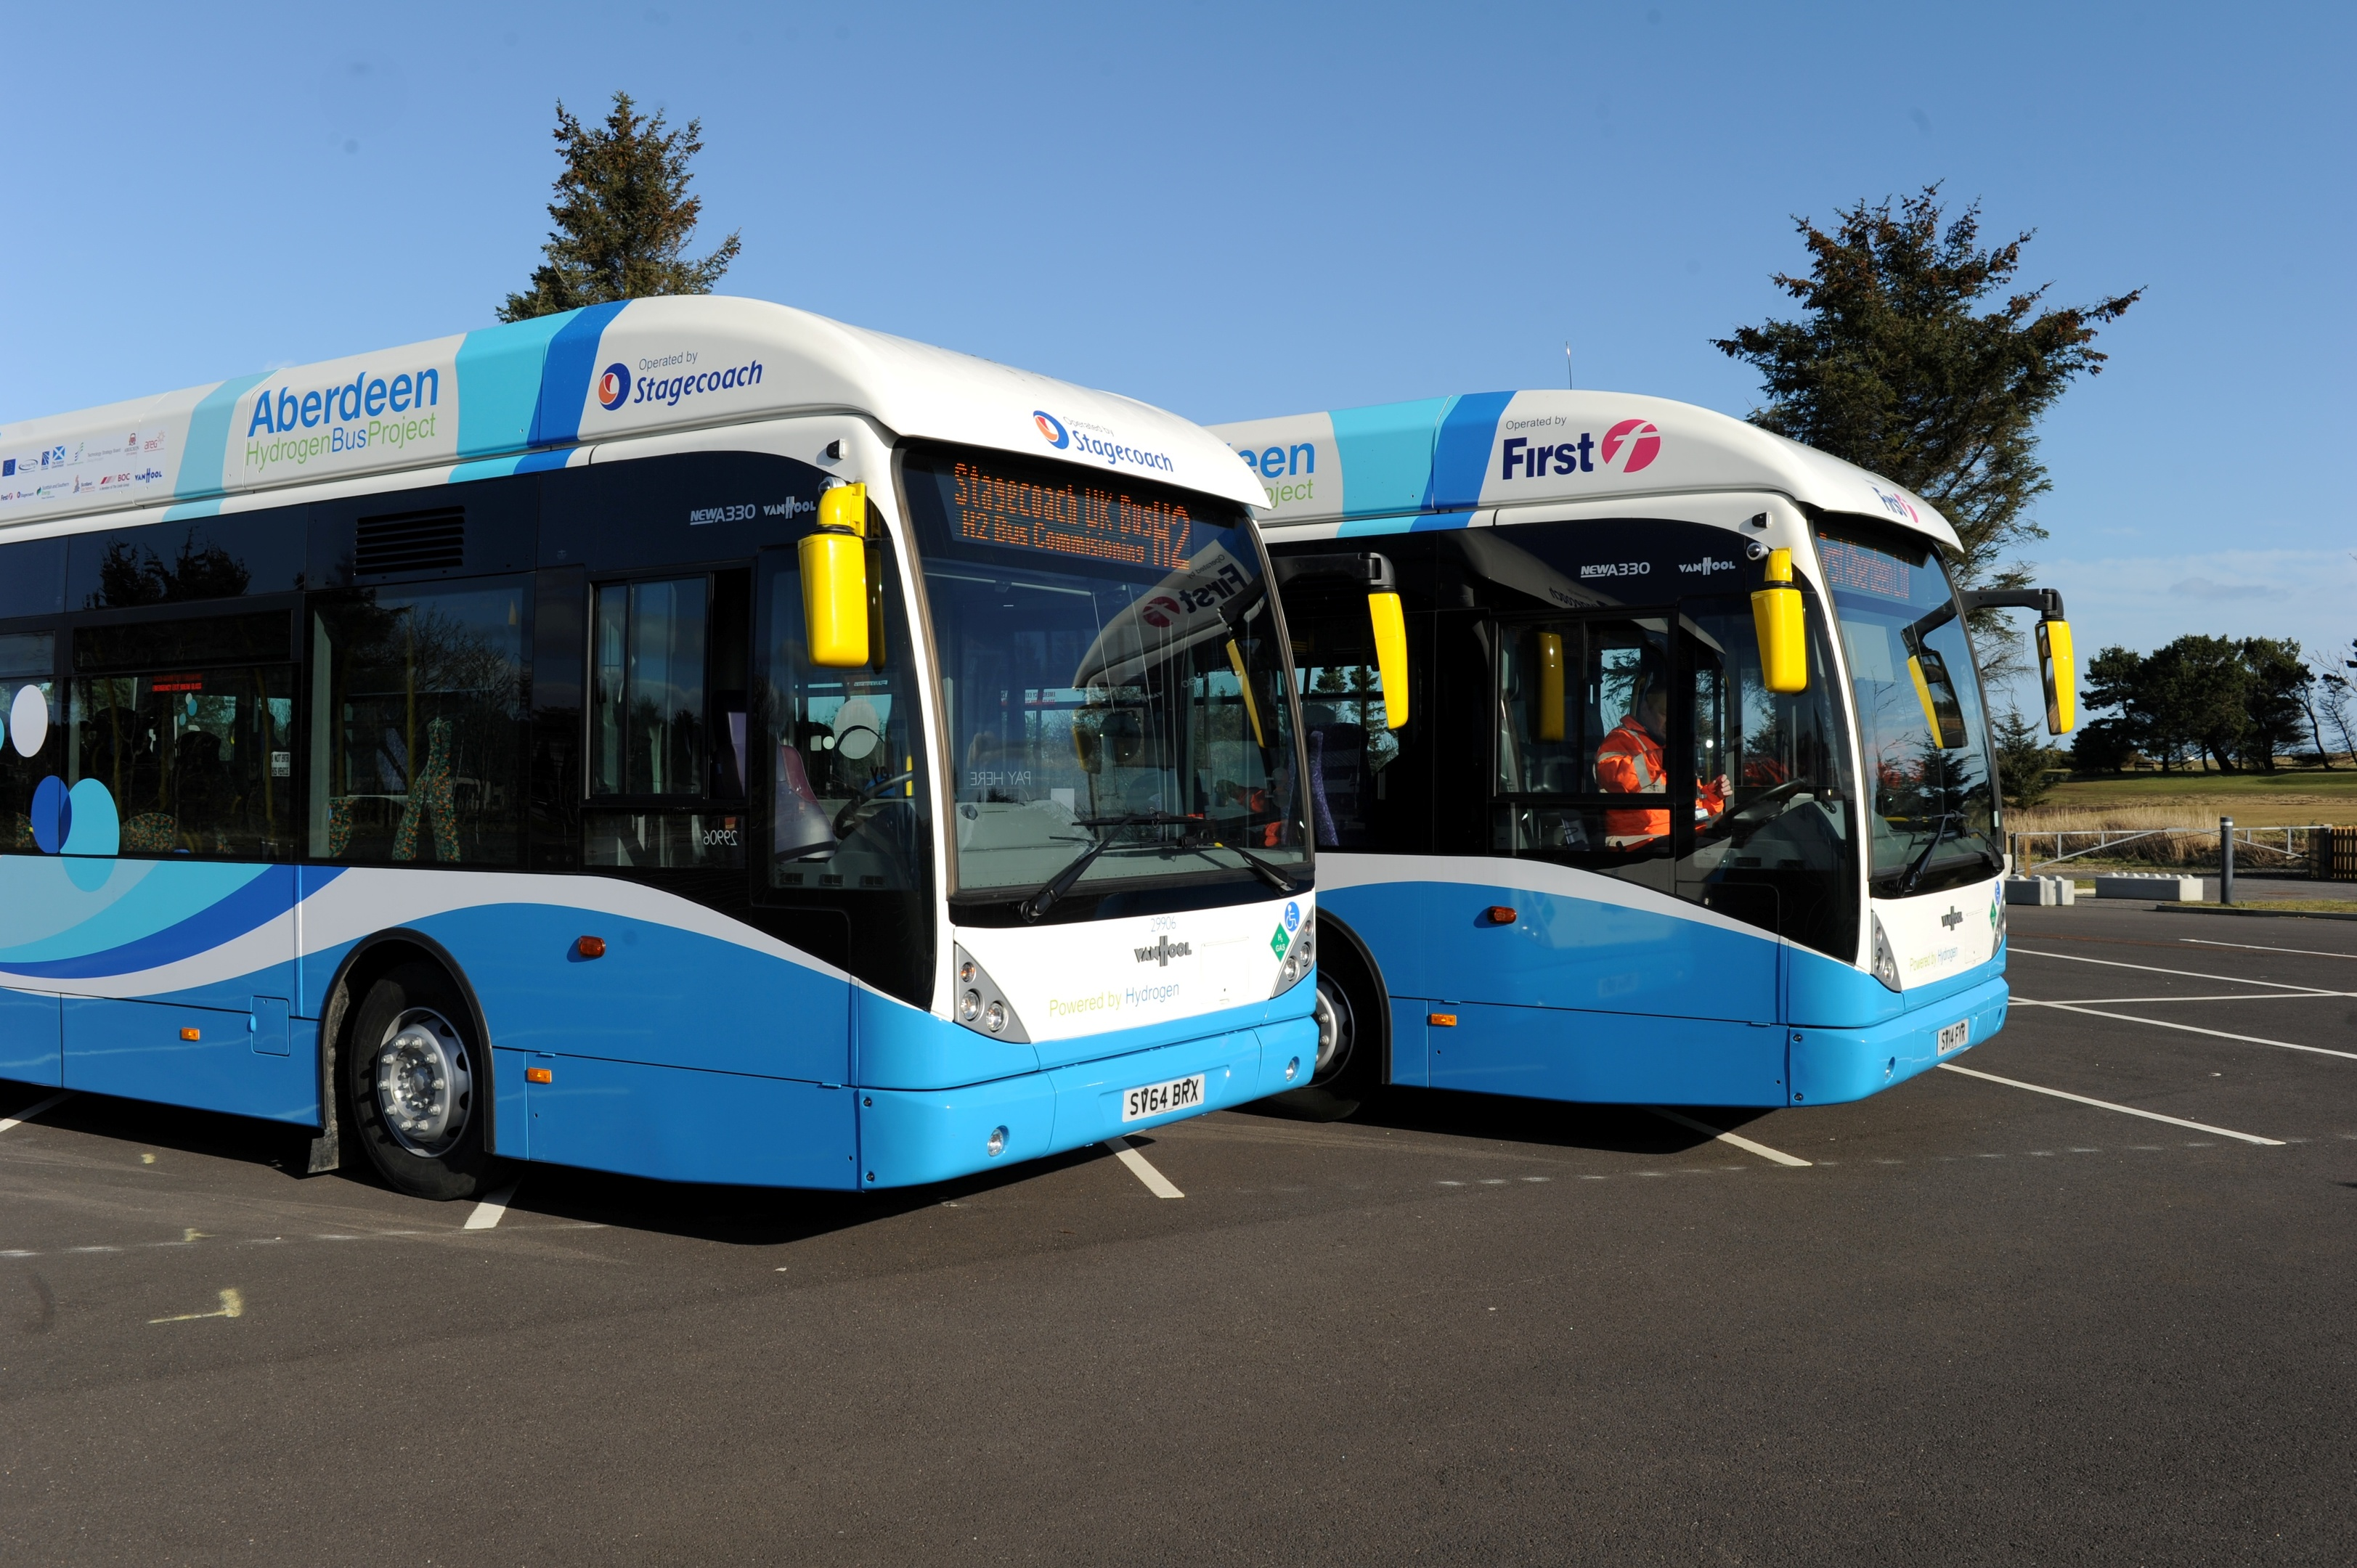 Aberdeen has a fleet of 10 hydrogen buses